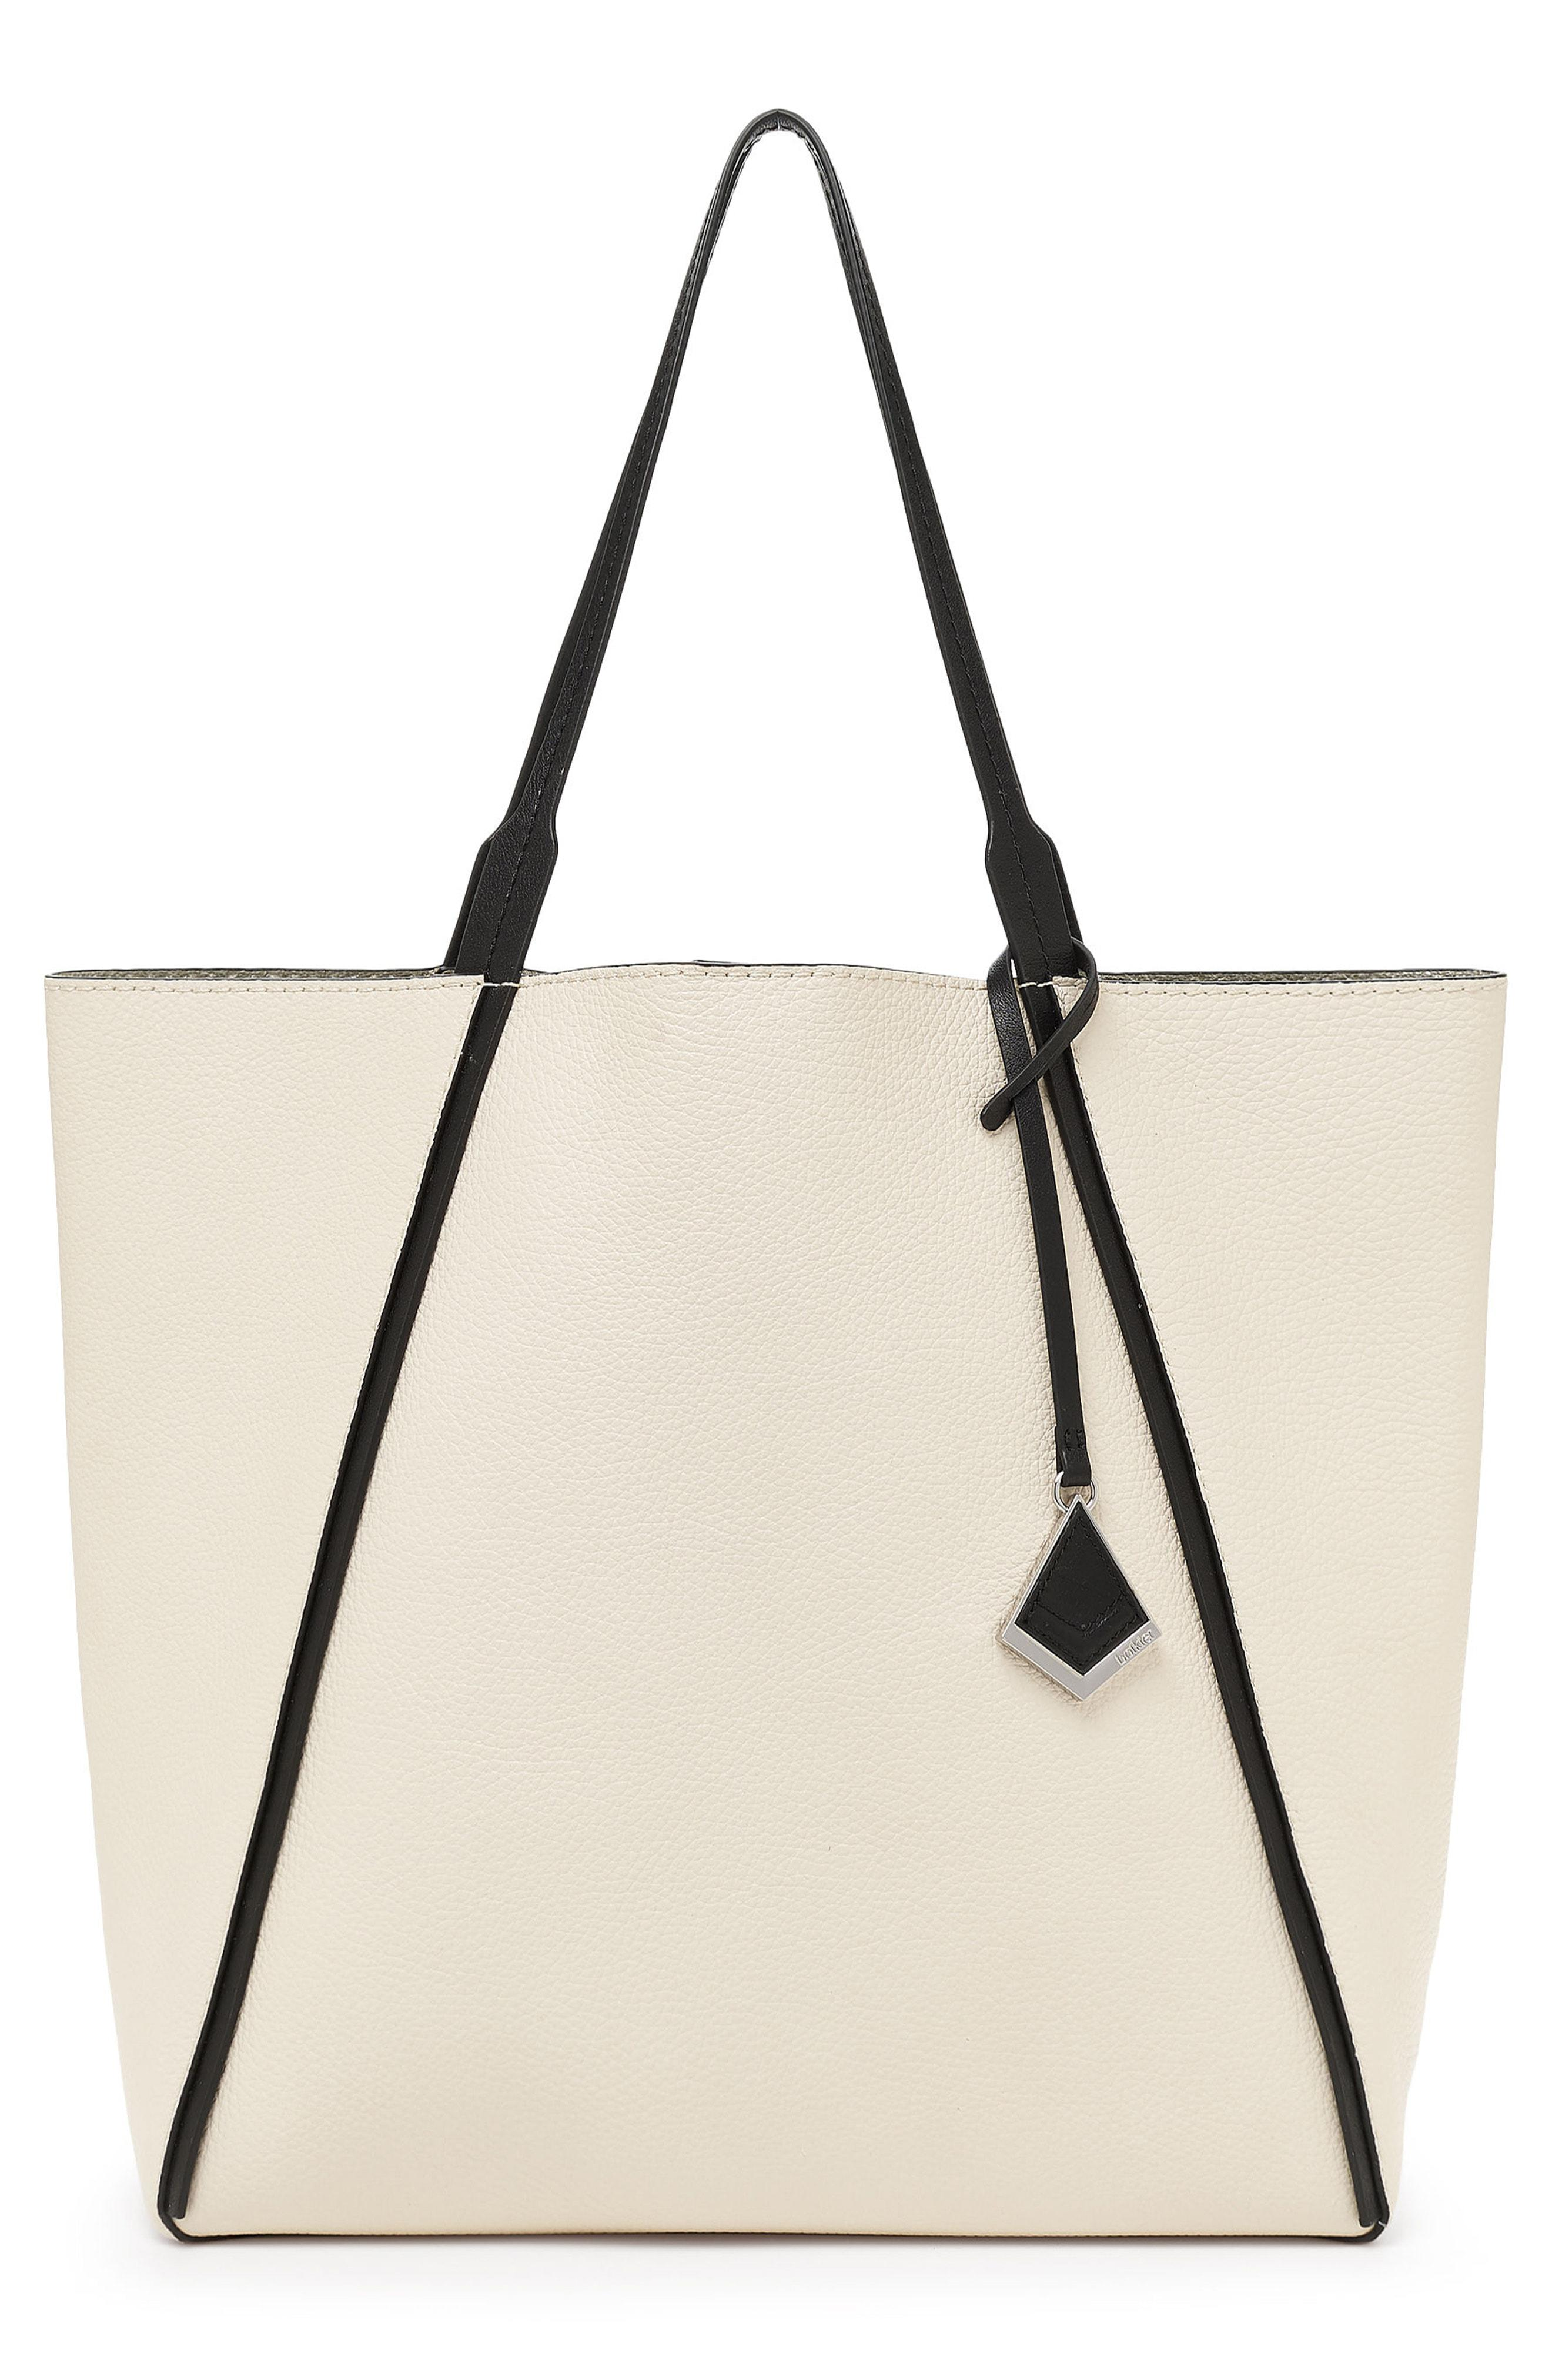 37dd6a065 Lyst - Botkier Trinity Calfskin Leather Tote in White